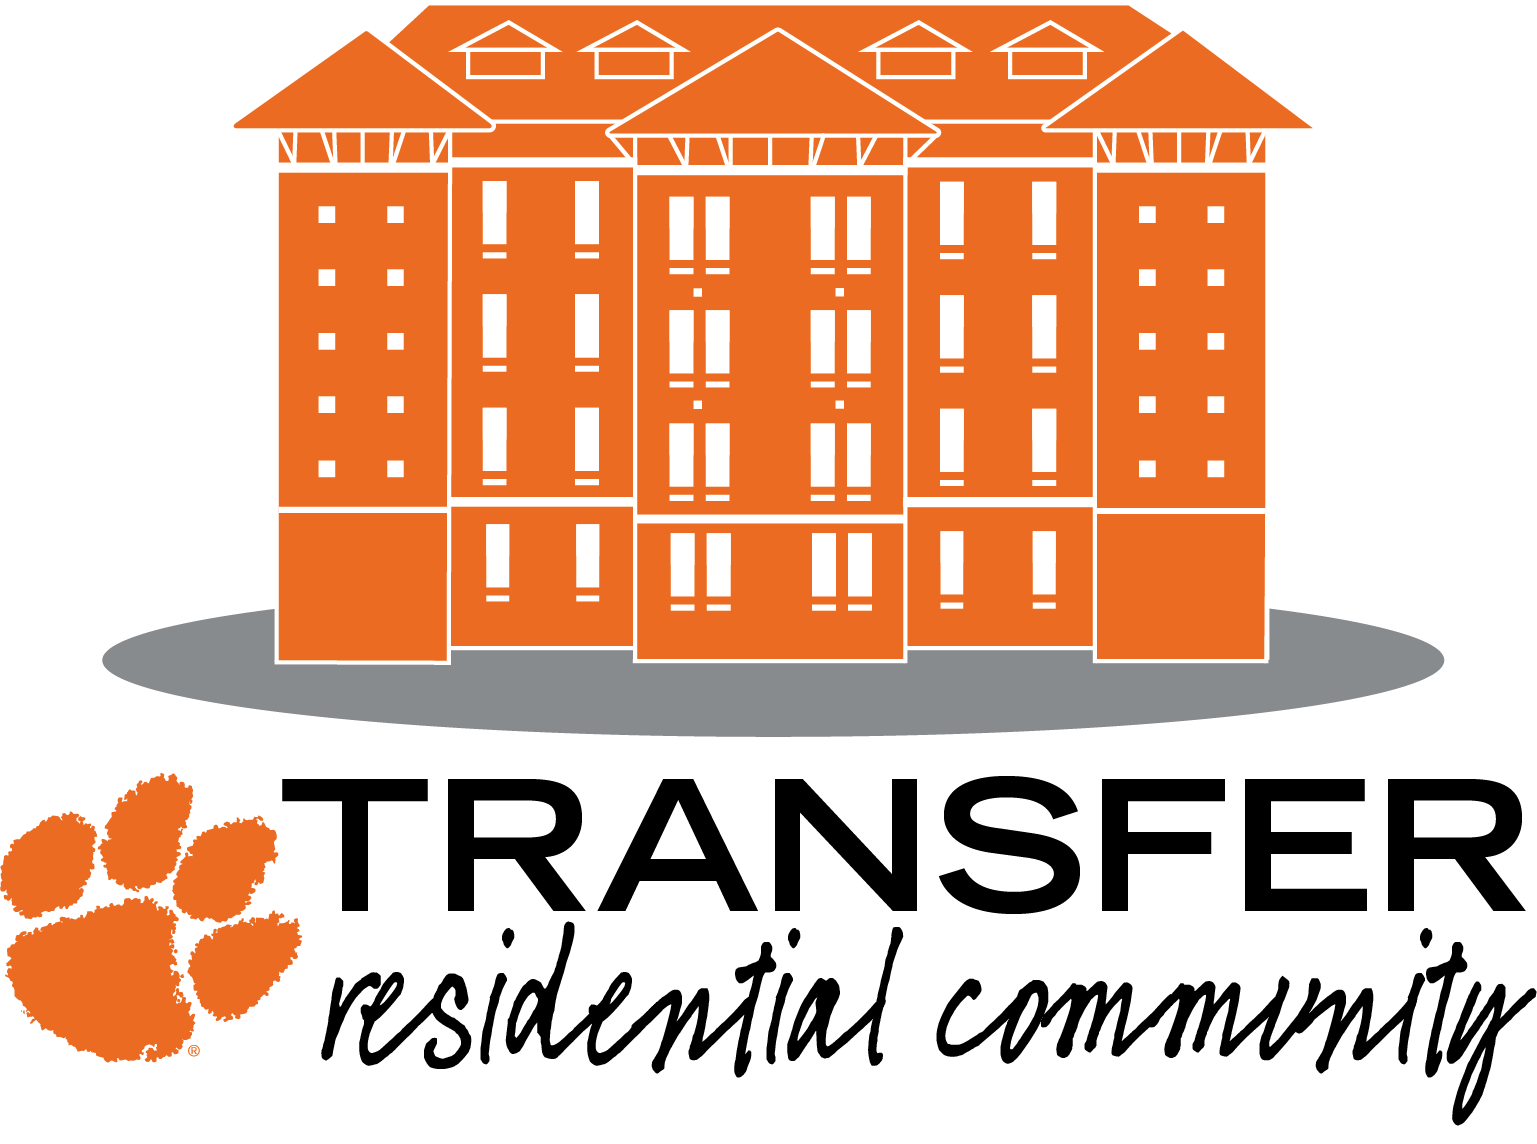 Community clipart residential community. Transfer clemson home logo